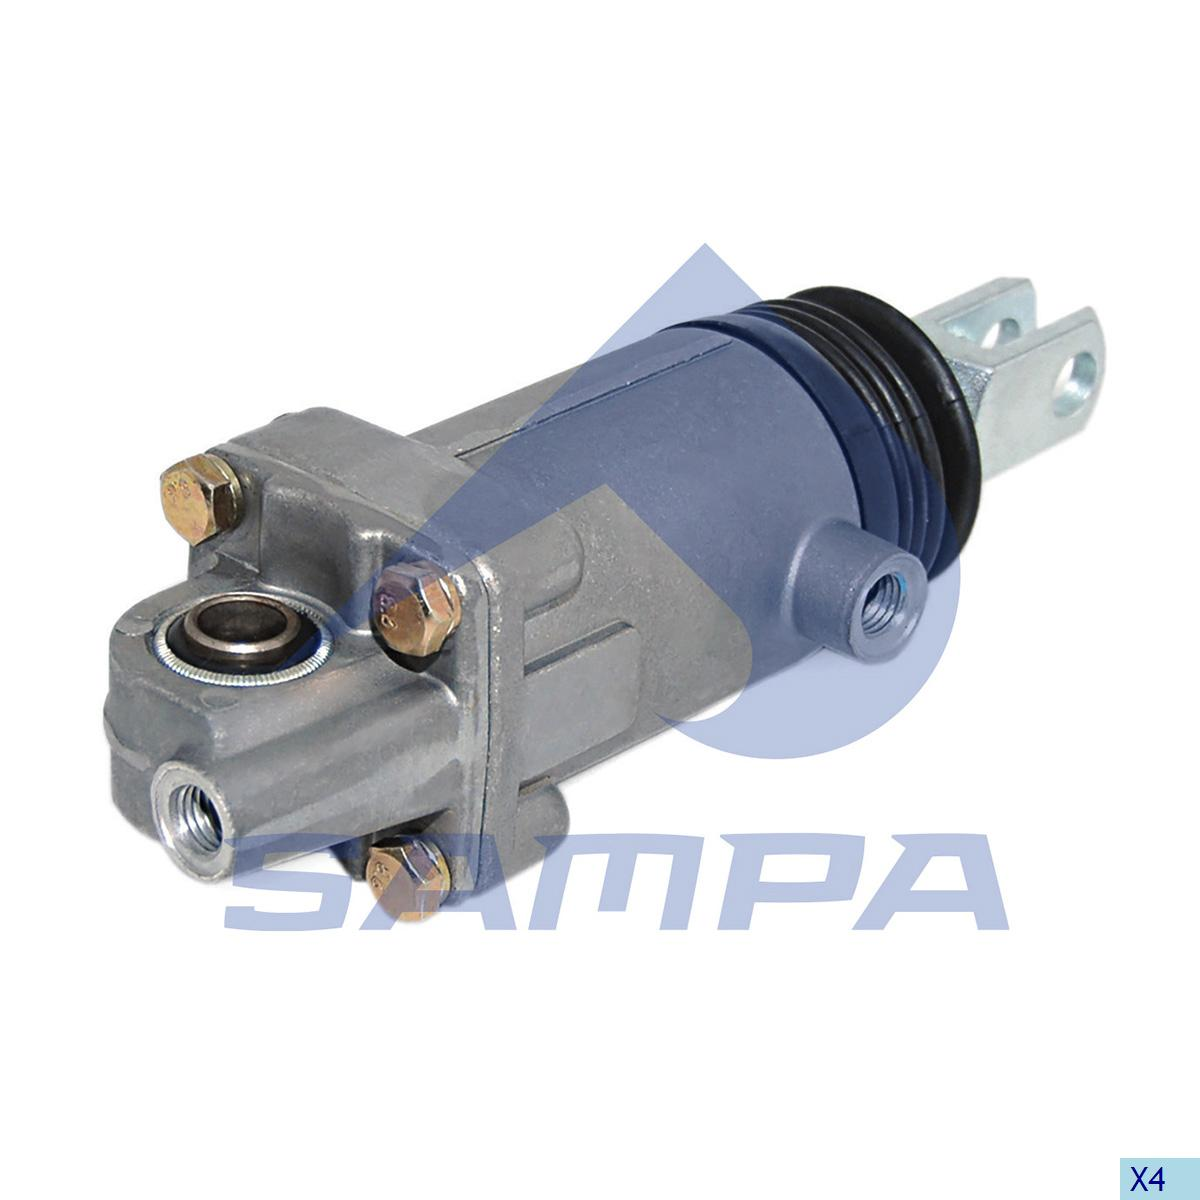 Cylinder, Gear Shift Control, Mercedes, Gear Box